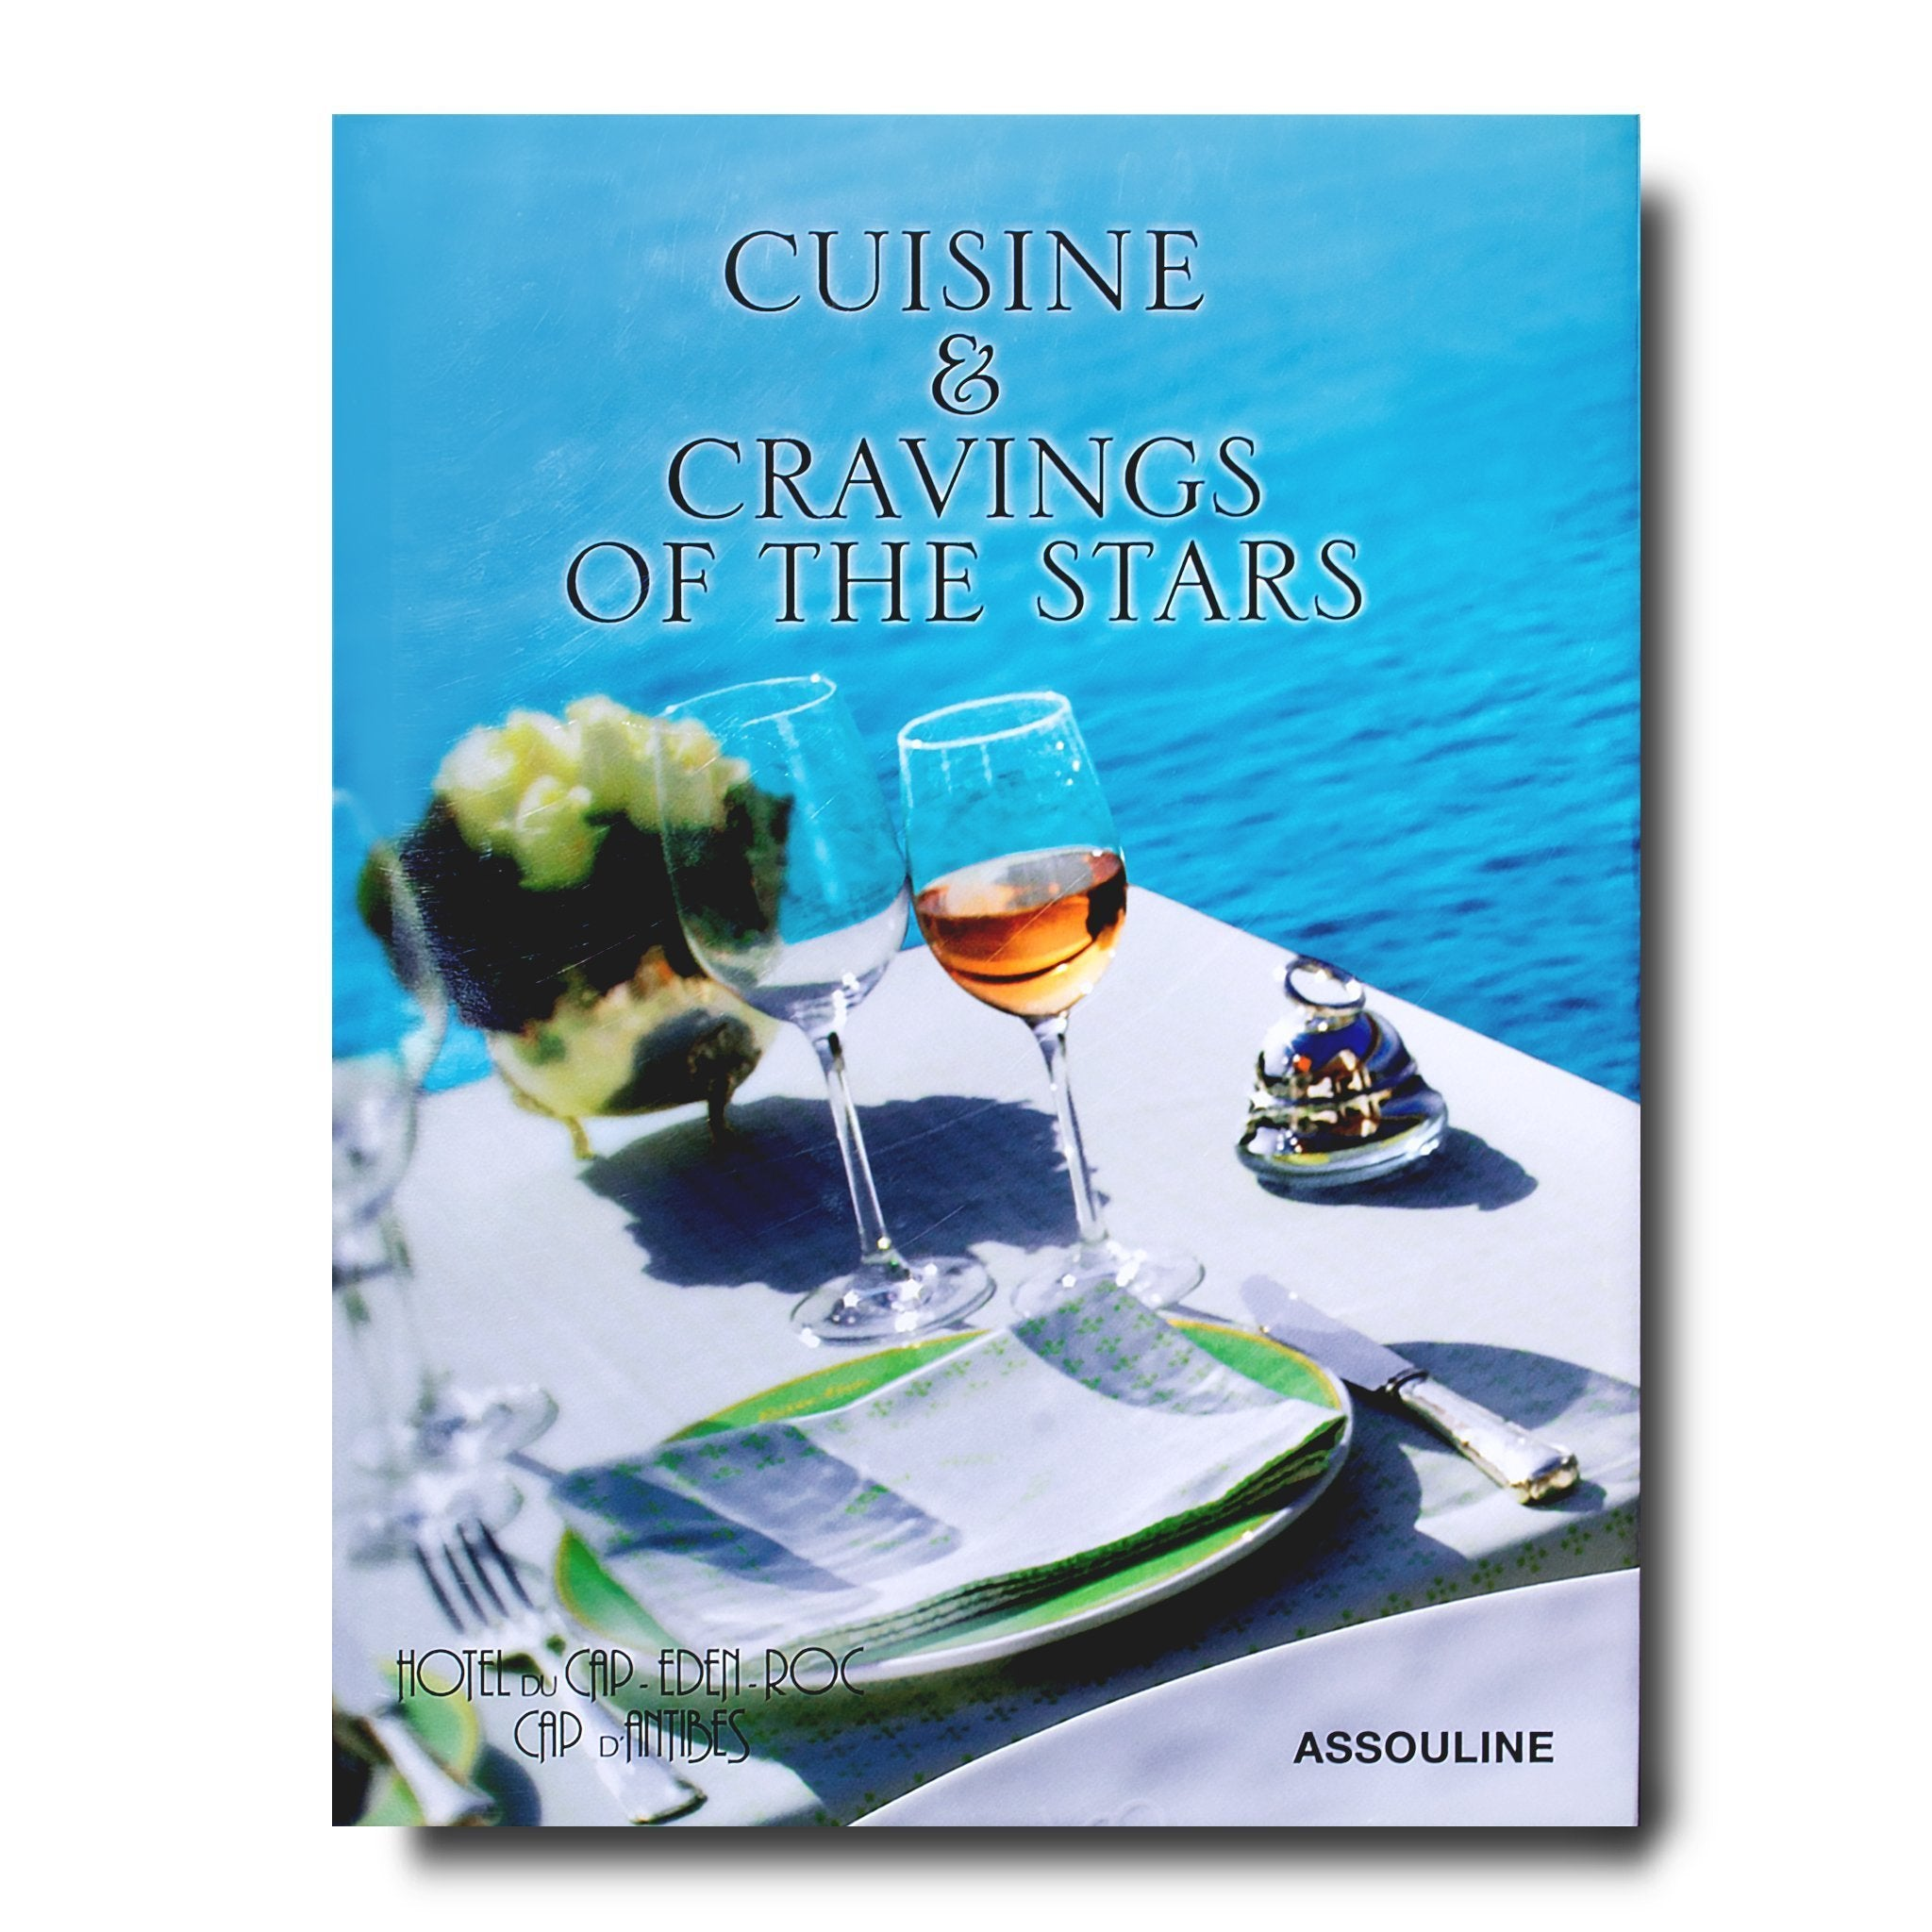 Hotel Du Cap Eden Roc: Cuisine & Cravings of the Stars - Assouline